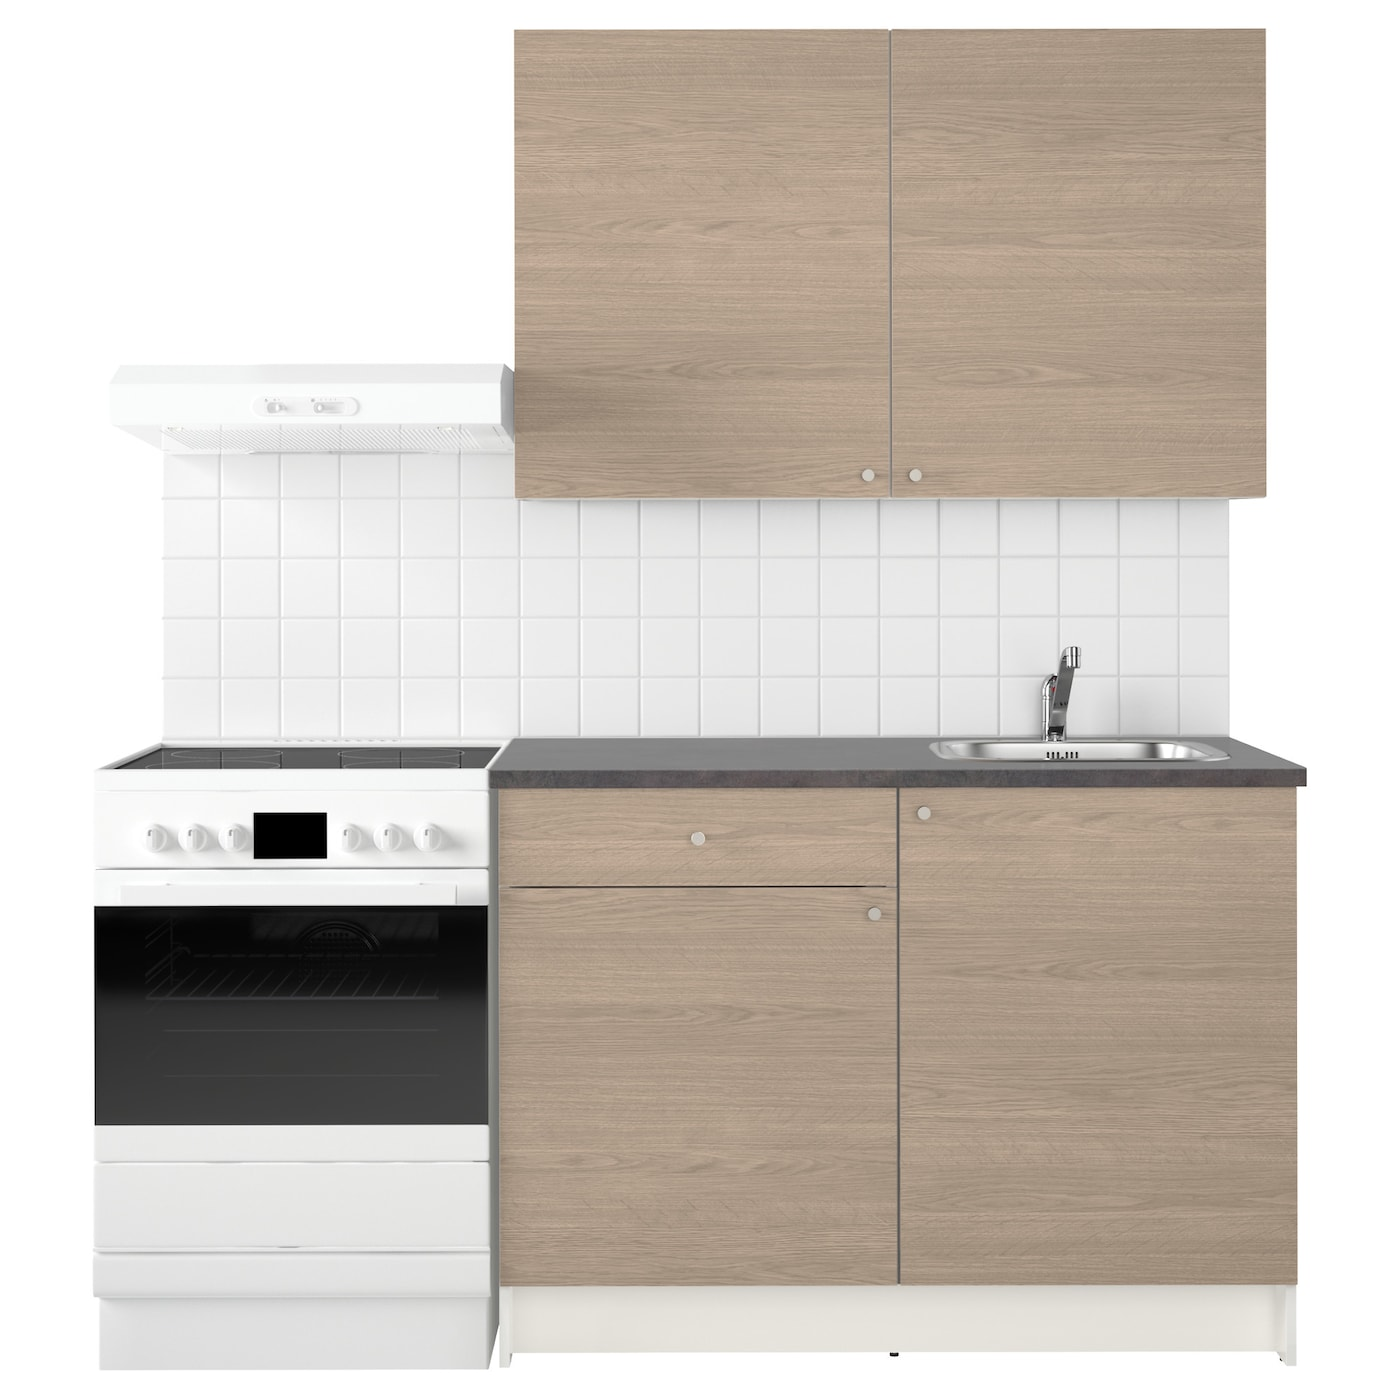 Kitchen Products, Doors and Worktops | IKEA